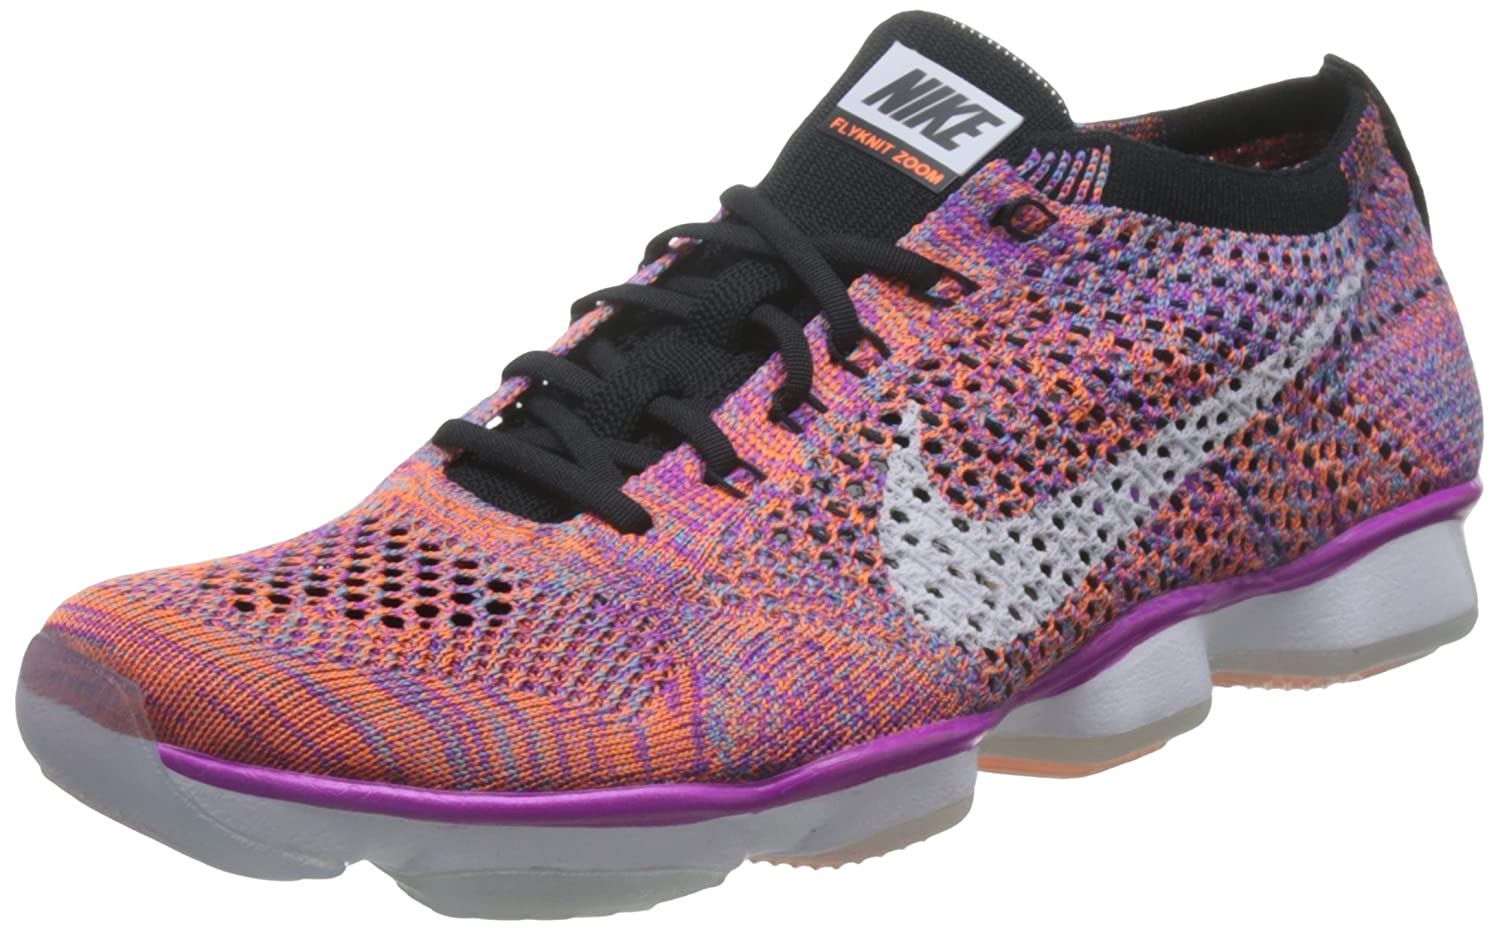 Nike Womens Flyknit Zoom Agility Training Sneakers SZ 8 M Parent